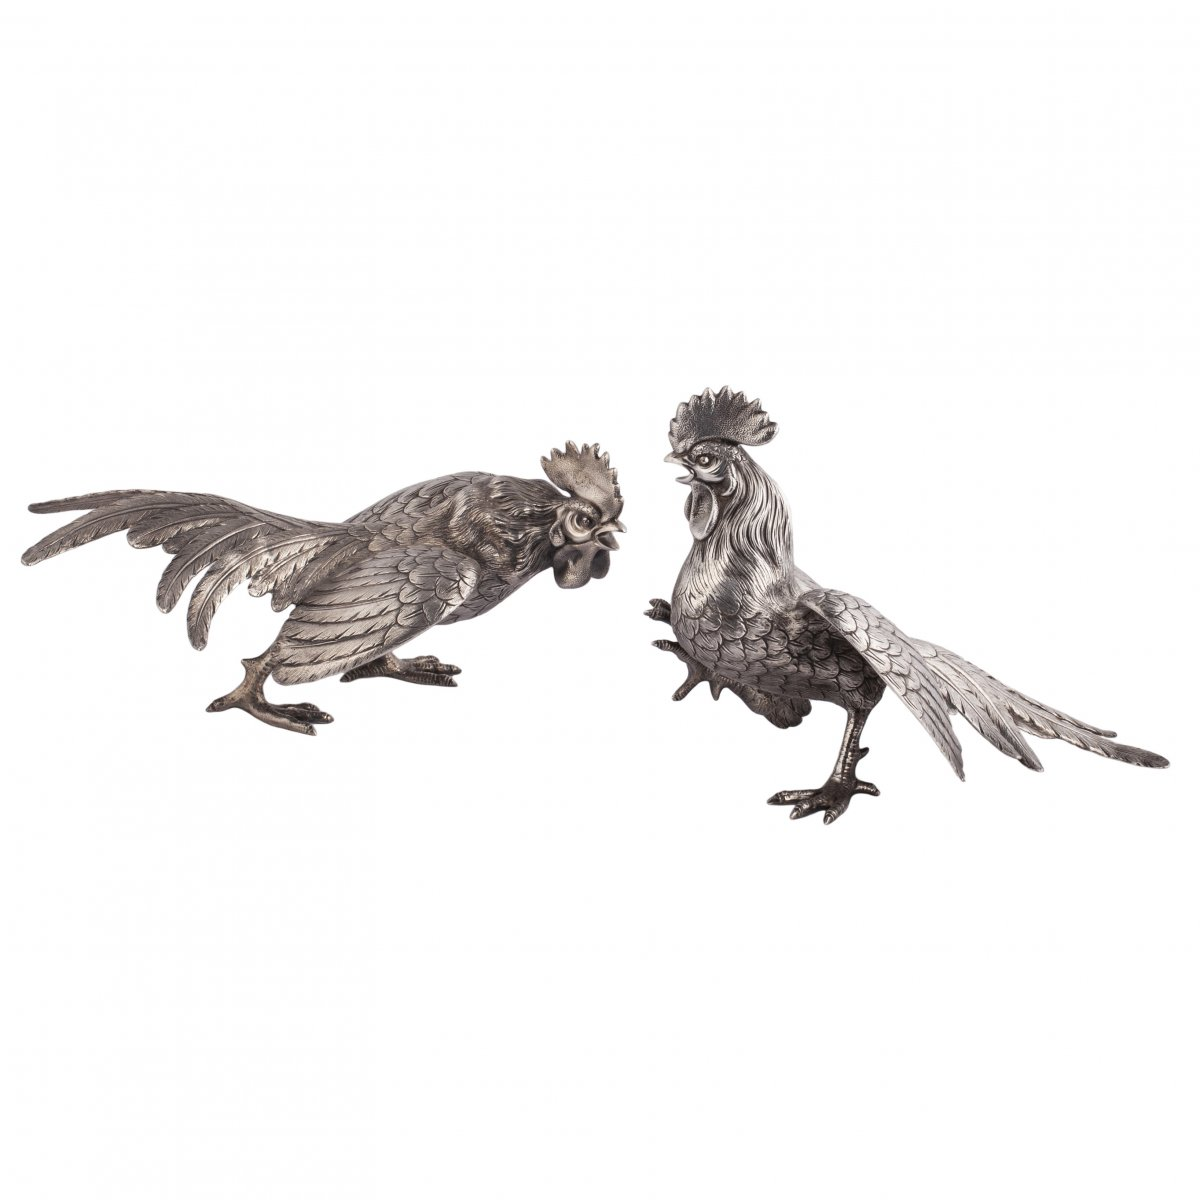 A Pair Of Gamecocks' Figurines